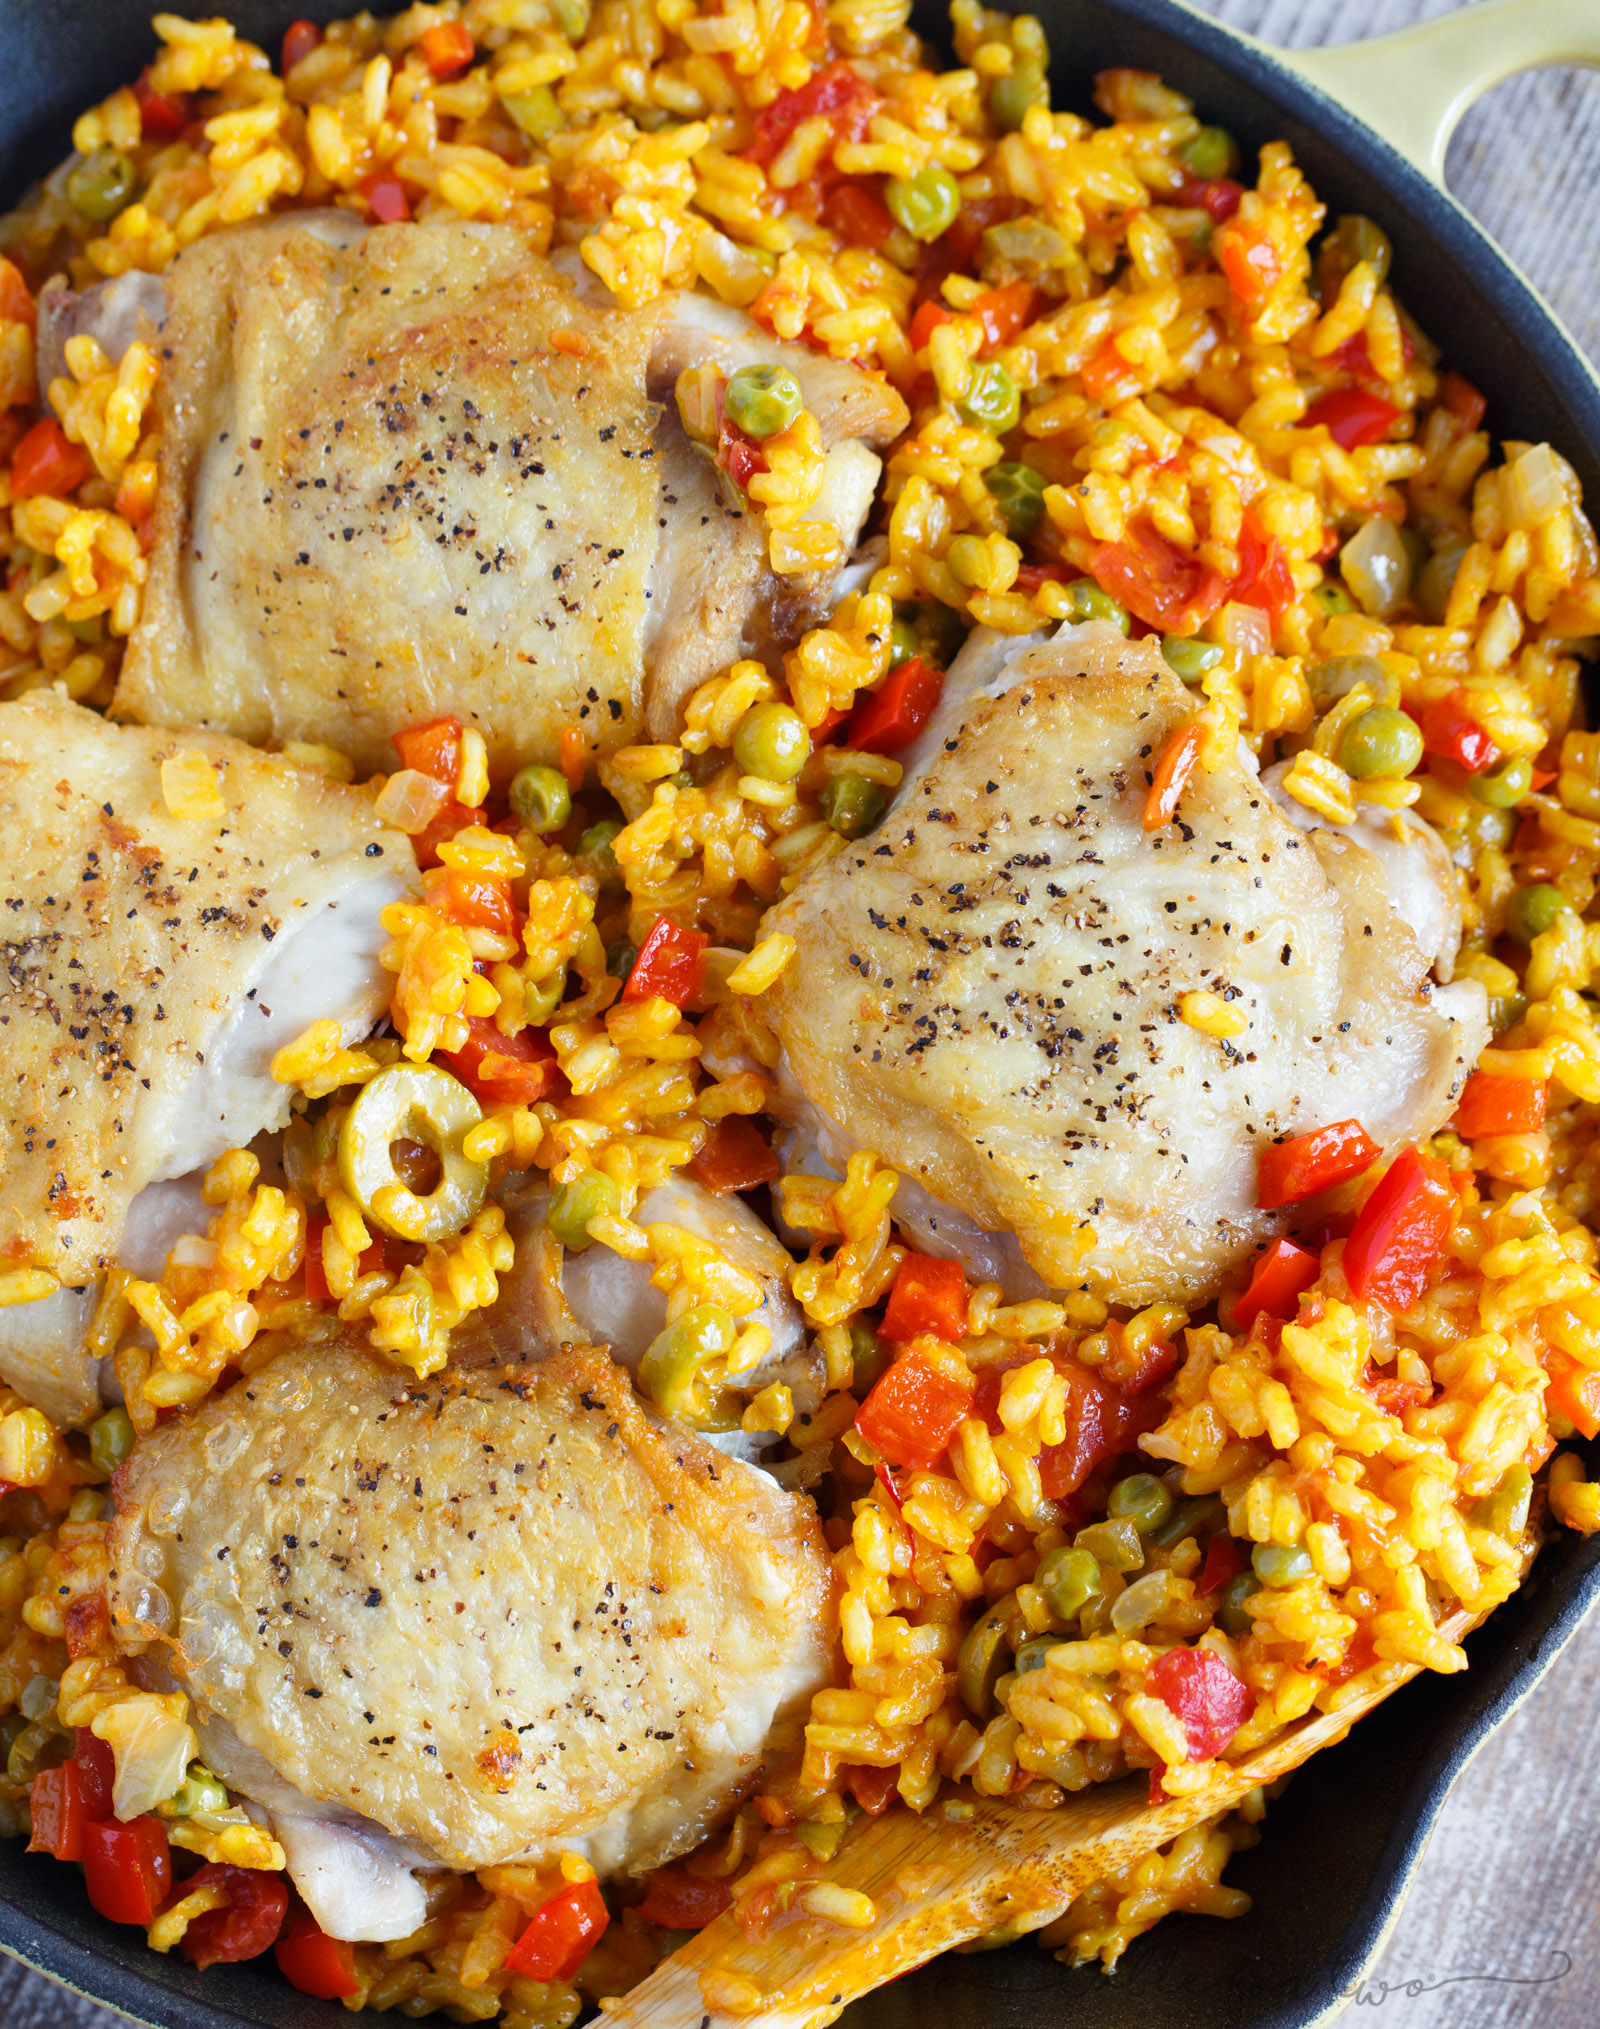 A quick and easy weeknight dish that will be a winner on your dinner table! This arroz con pollo skillet dish has incredible amounts of flavor and is a classic!